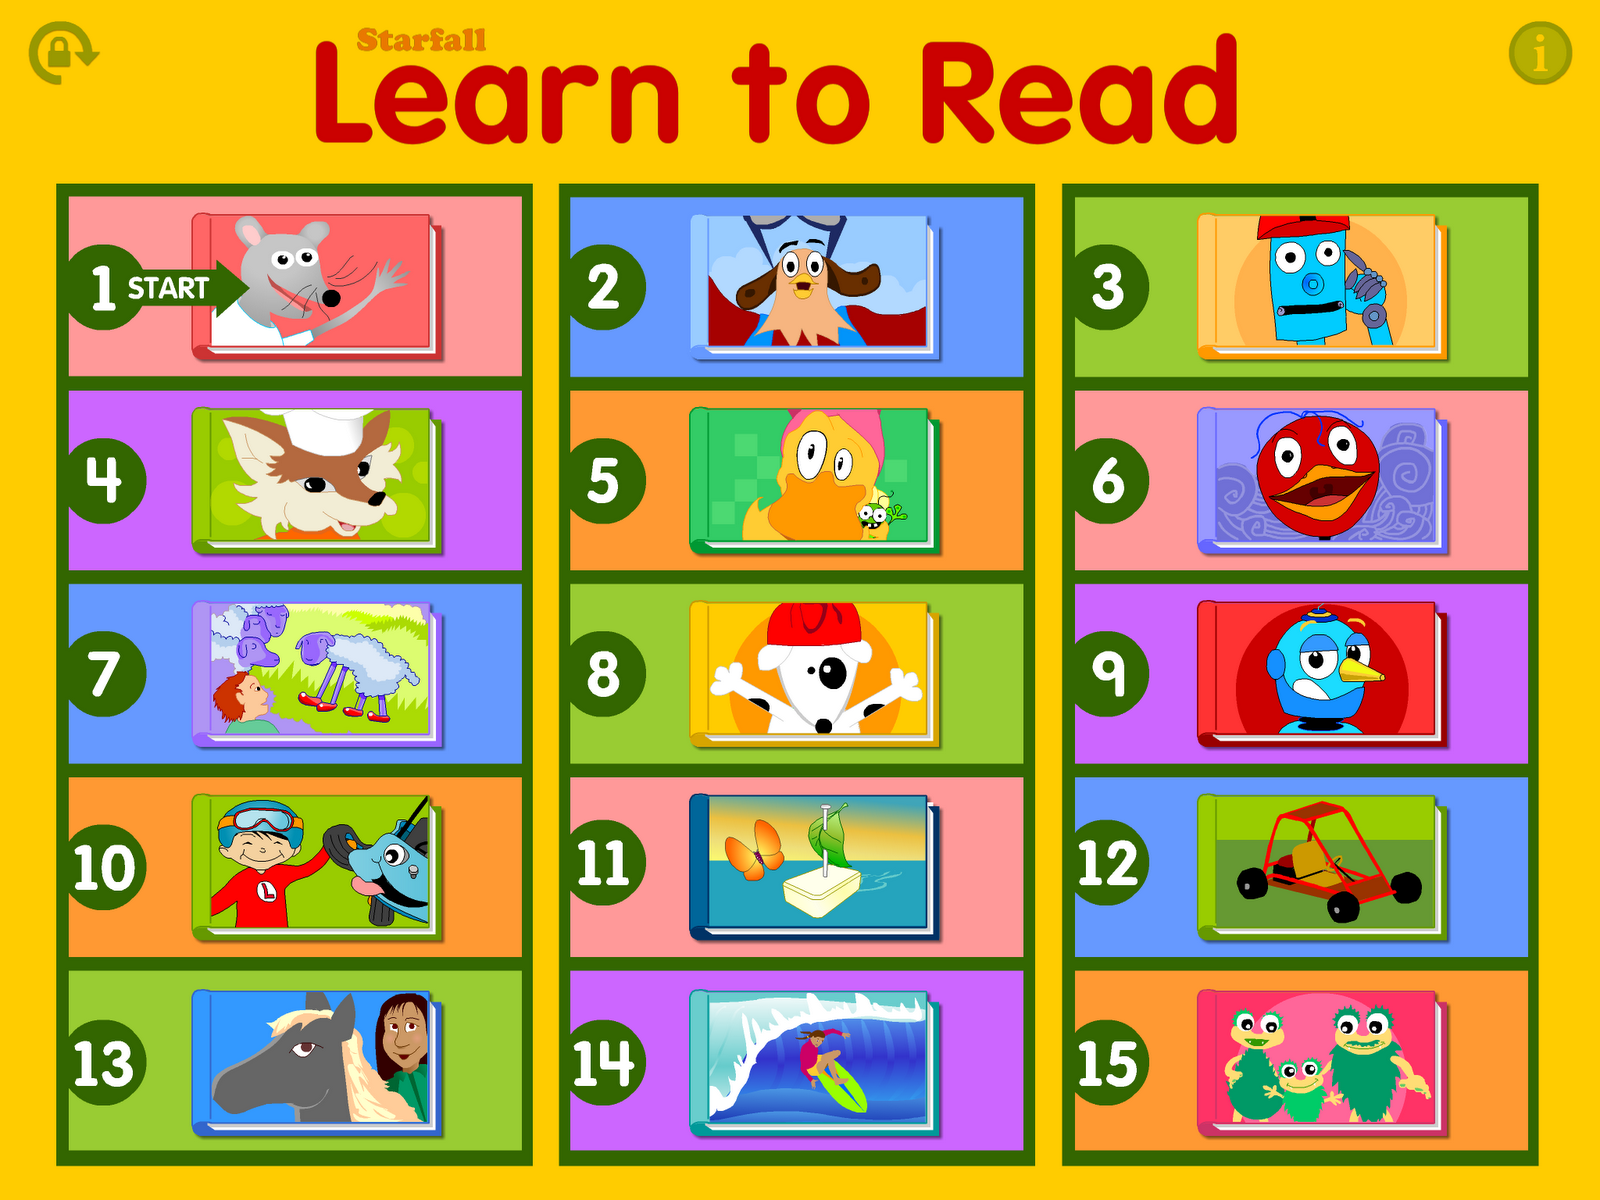 AppAbled: Starfall Learn to Read - Review